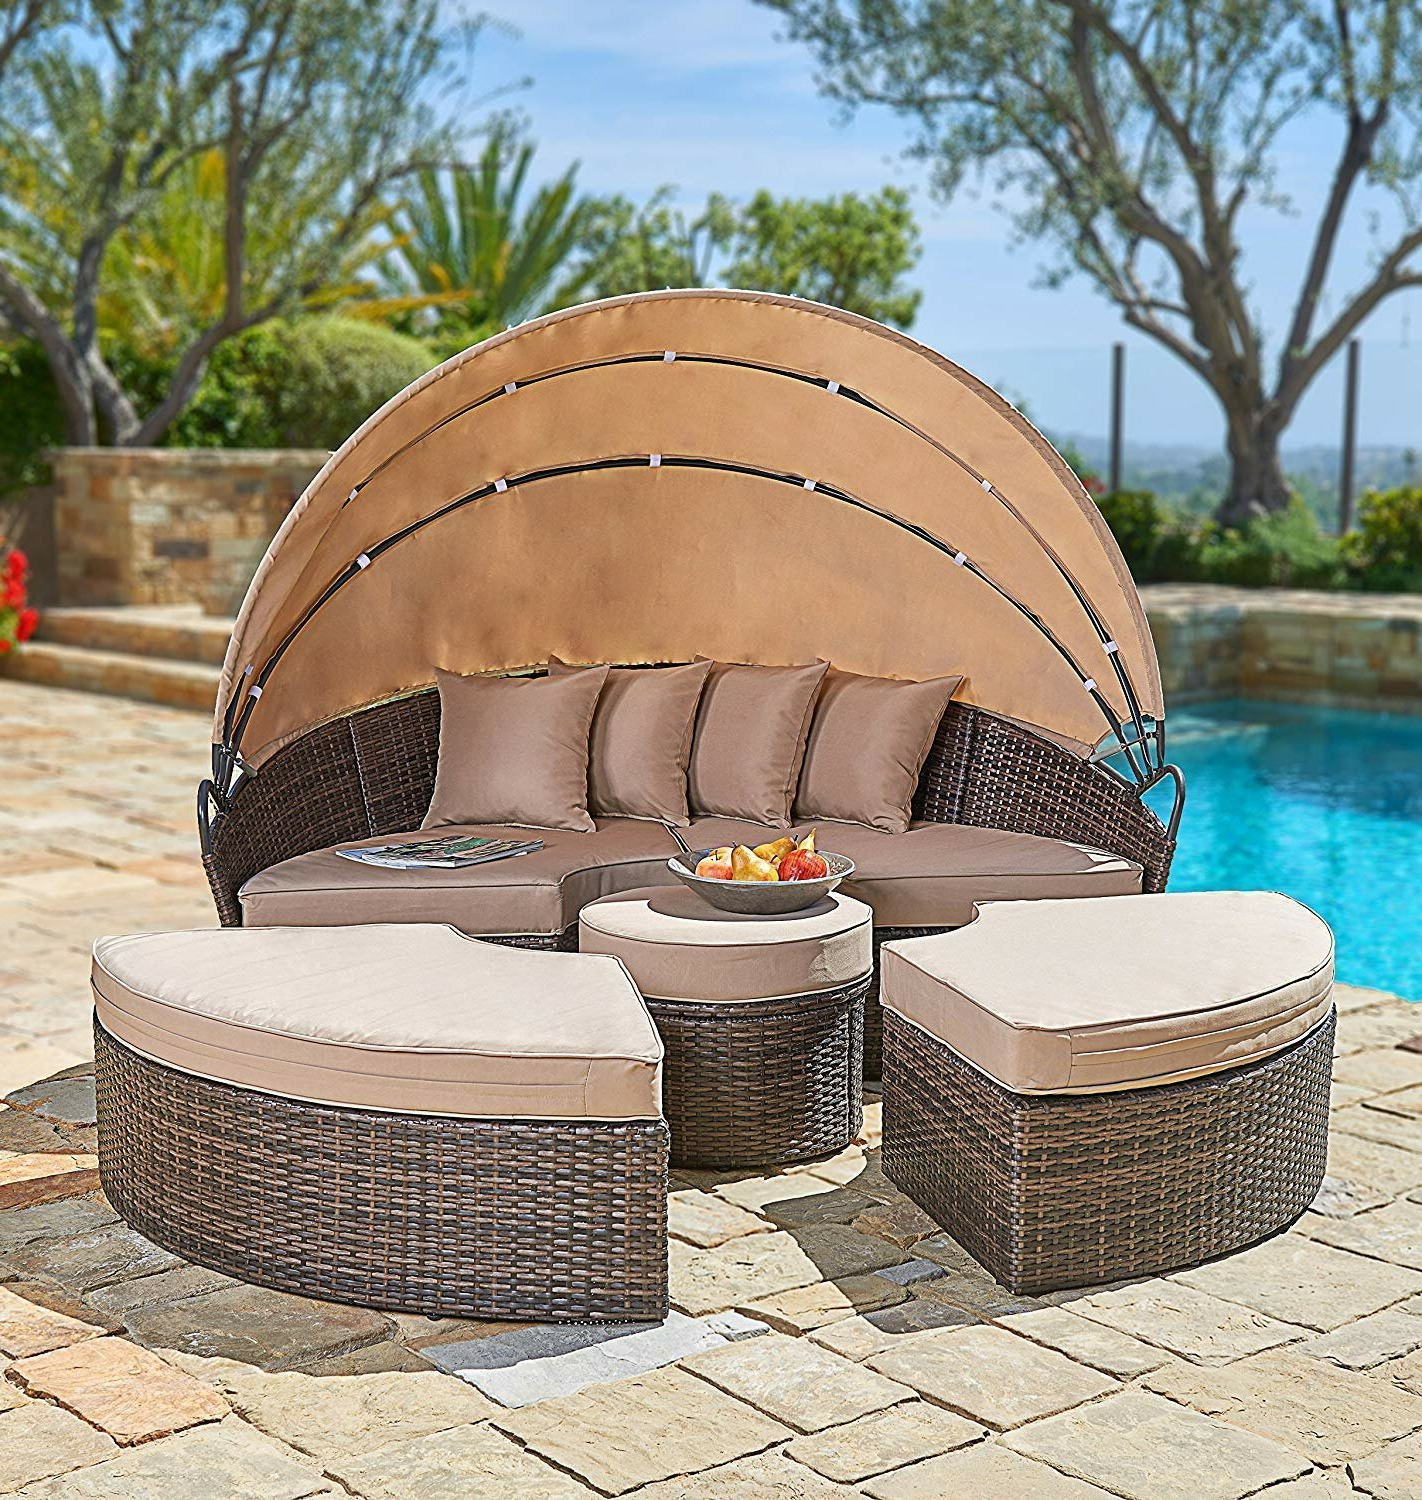 Harlow Patio Daybeds With Cushions Inside Trendy Behling Canopy Patio Daybed With Cushions (View 17 of 20)